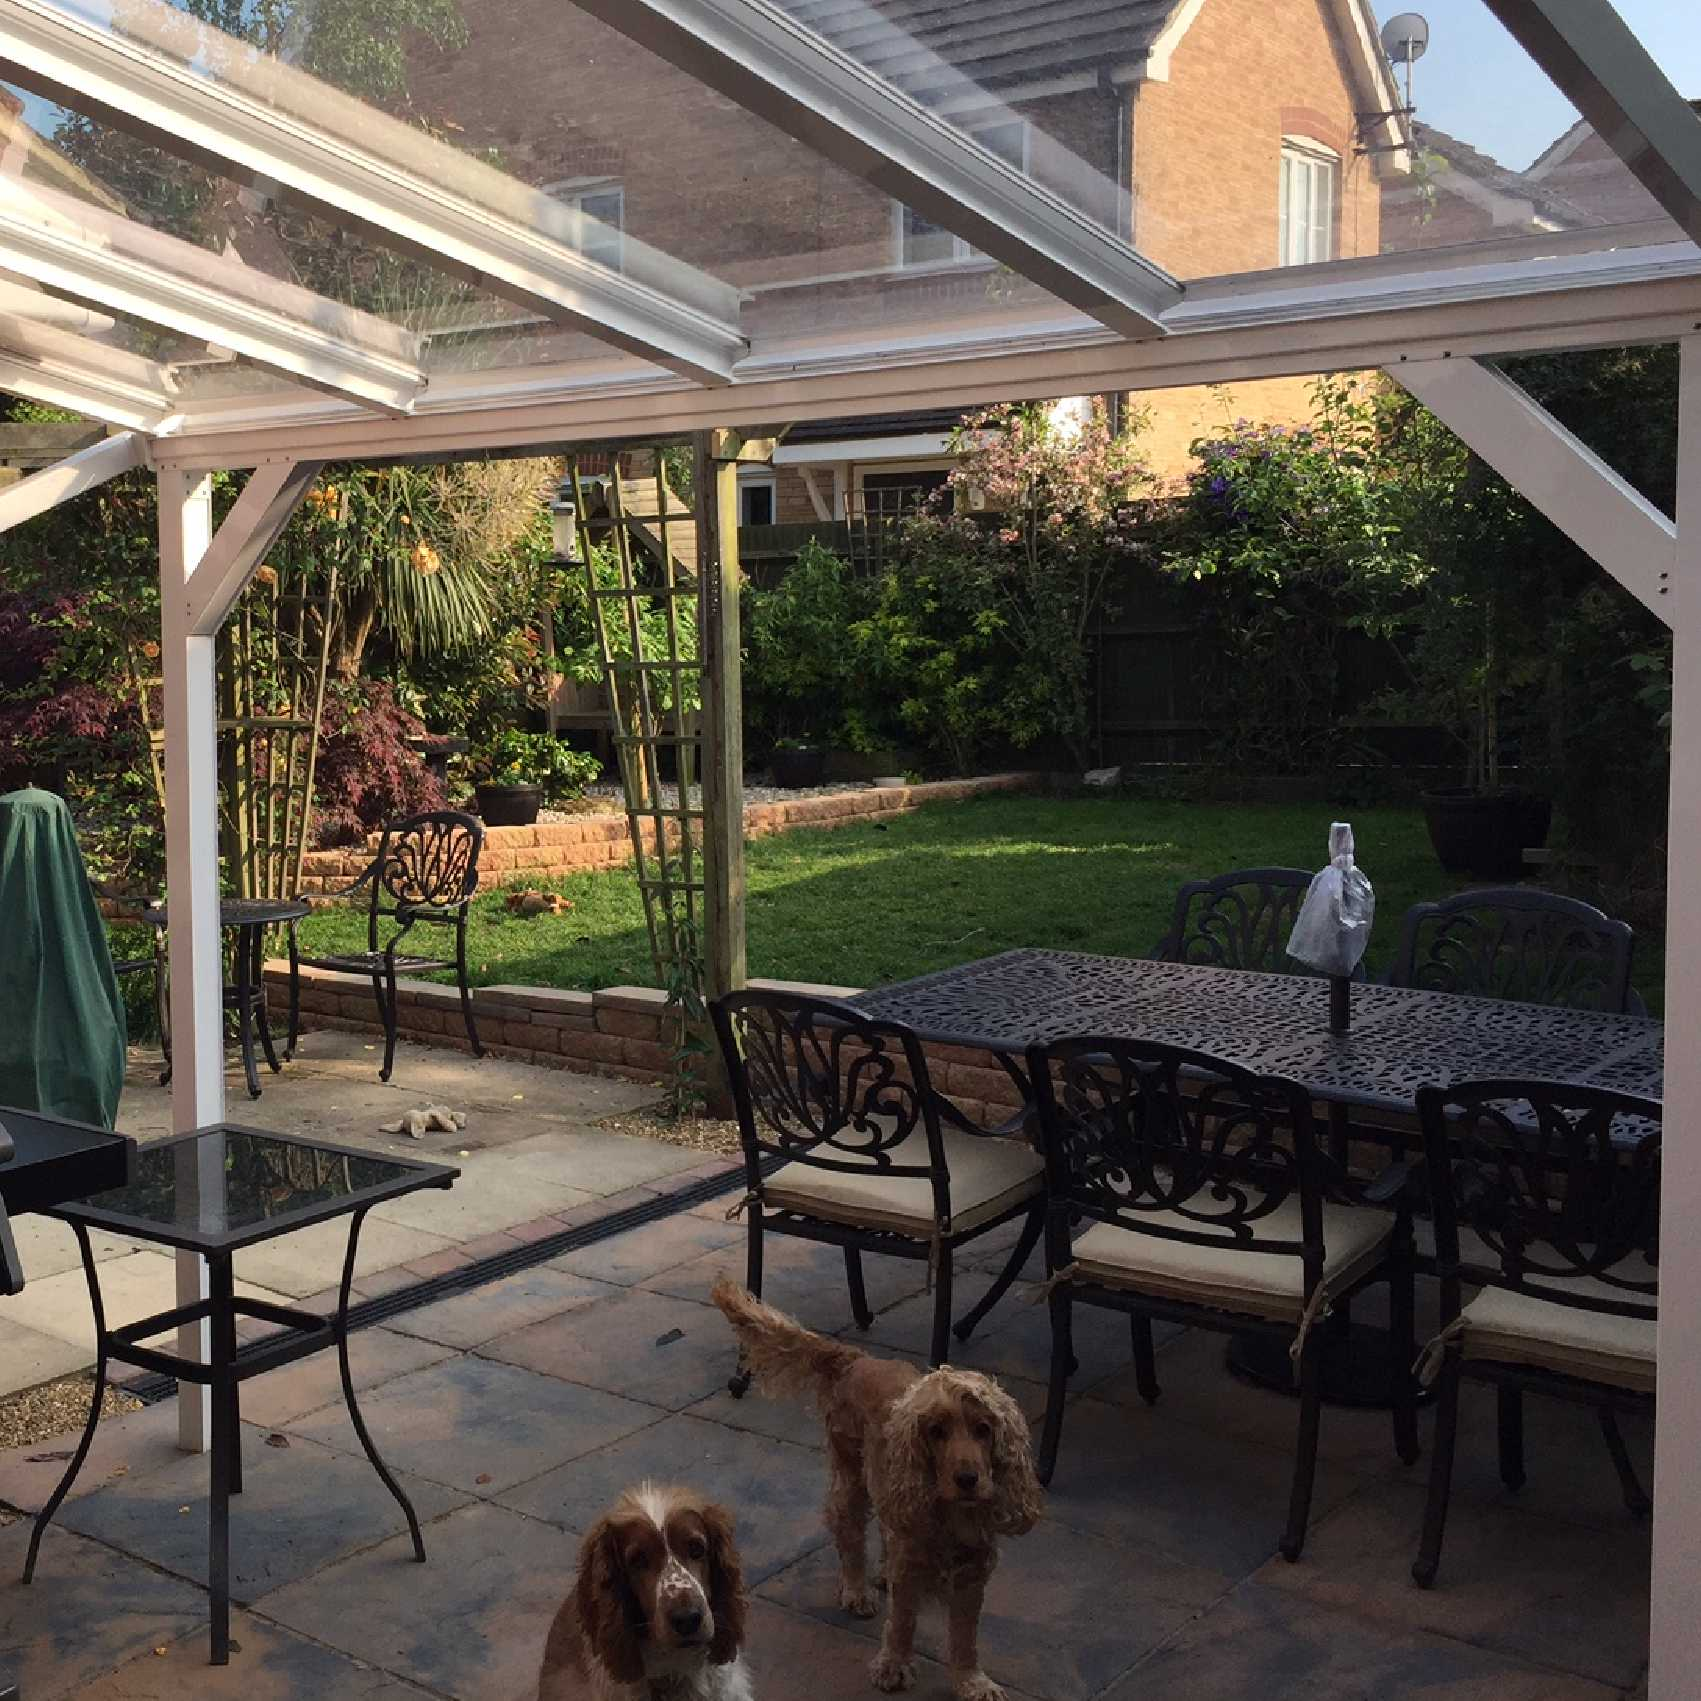 Affordable Omega Smart White Lean-To Canopy with 6mm Glass Clear Plate Polycarbonate Glazing - 8.4m (W) x 4.0m (P), (4) Supporting Posts